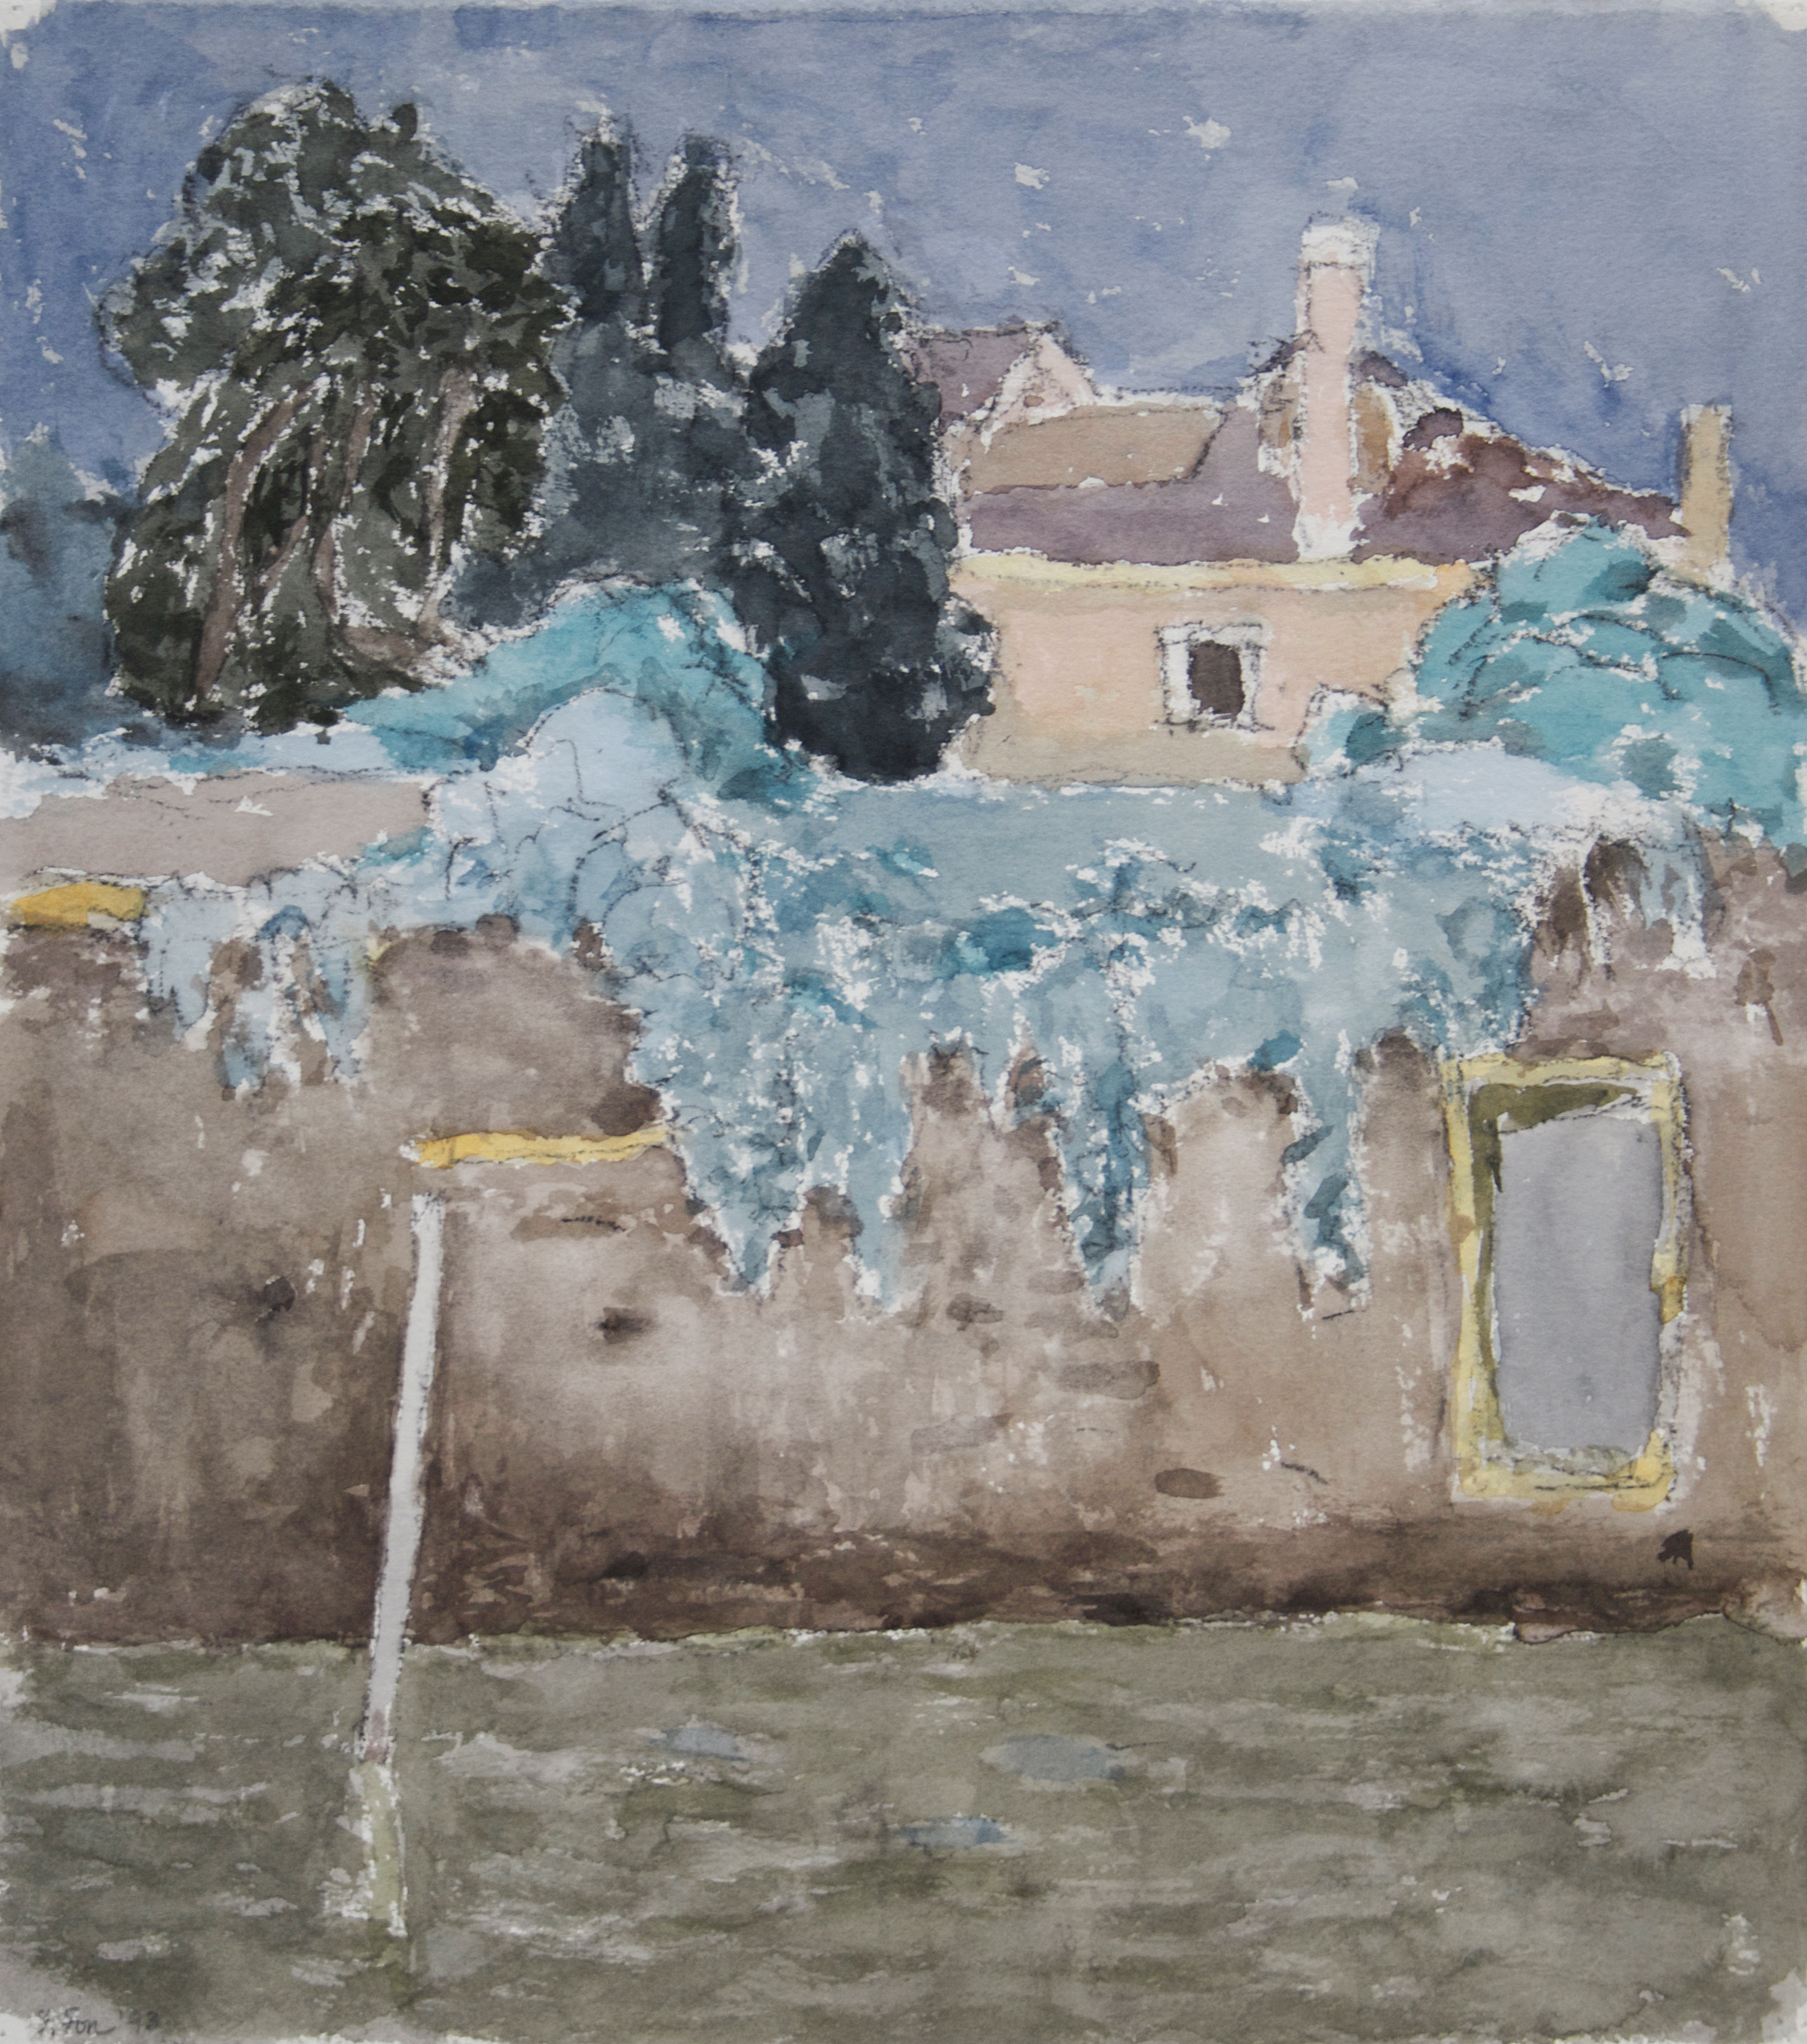 1993_Rio_della_Misercordia_Venice_watercolour_and_charcoal_on_paper_17x15in_43x38cm_WPF350.jpg